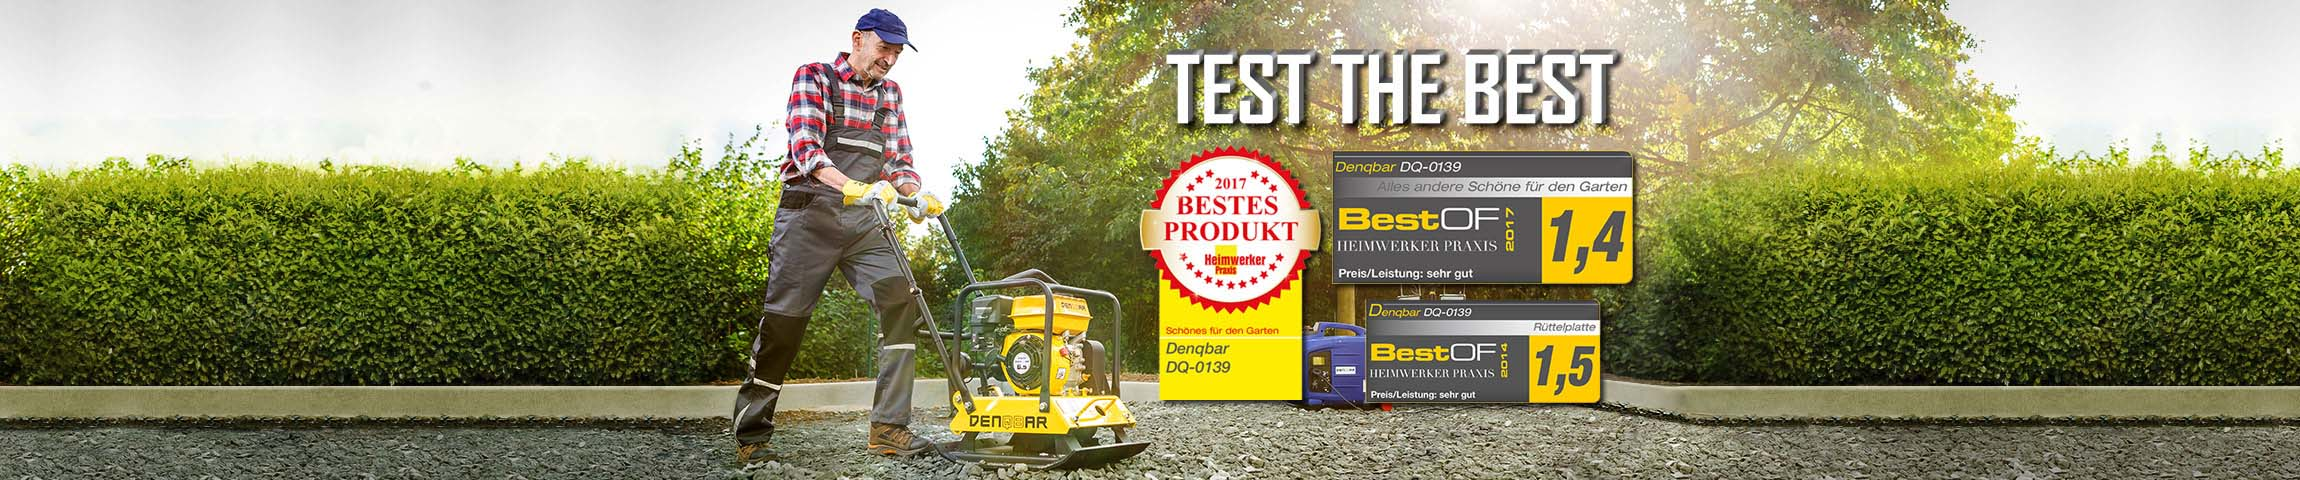 Test The Best - plaques vibrantes par DENQBAR